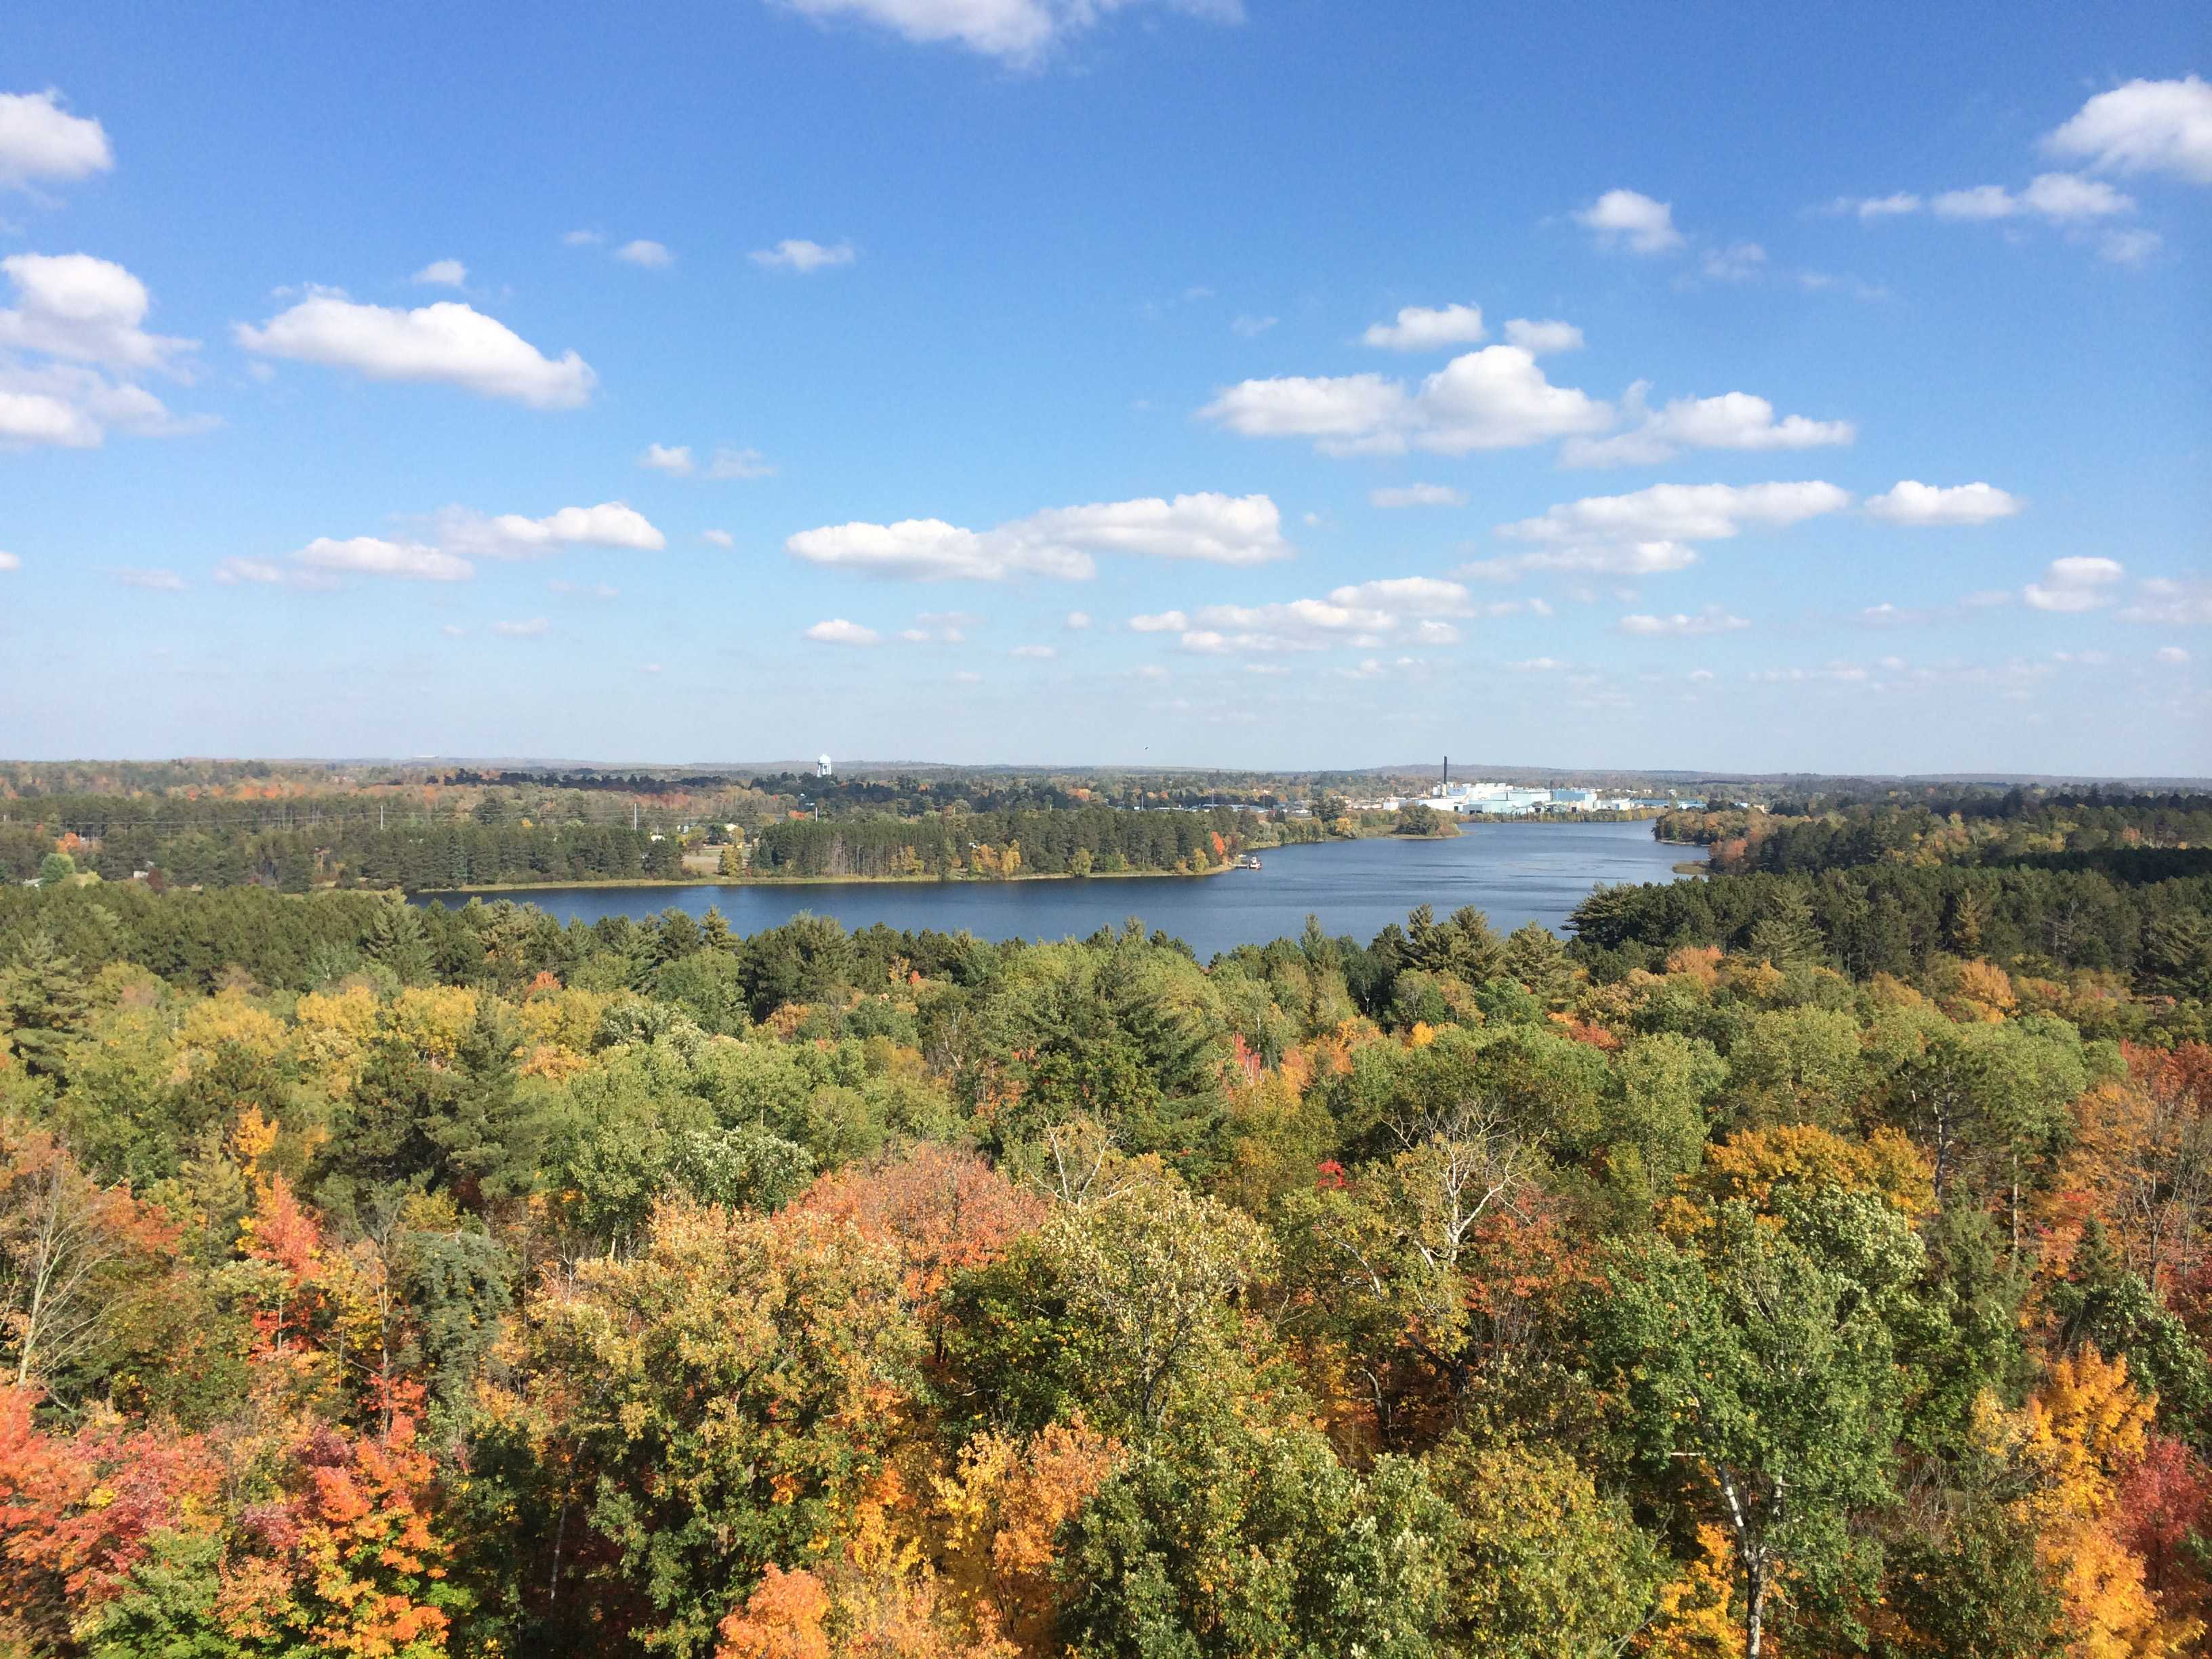 View+from+the+Fire+Tower+at+the+Forest+History+Center+in+Grand+Rapids.+Photos+by+Amy+Lebowitz%2715.